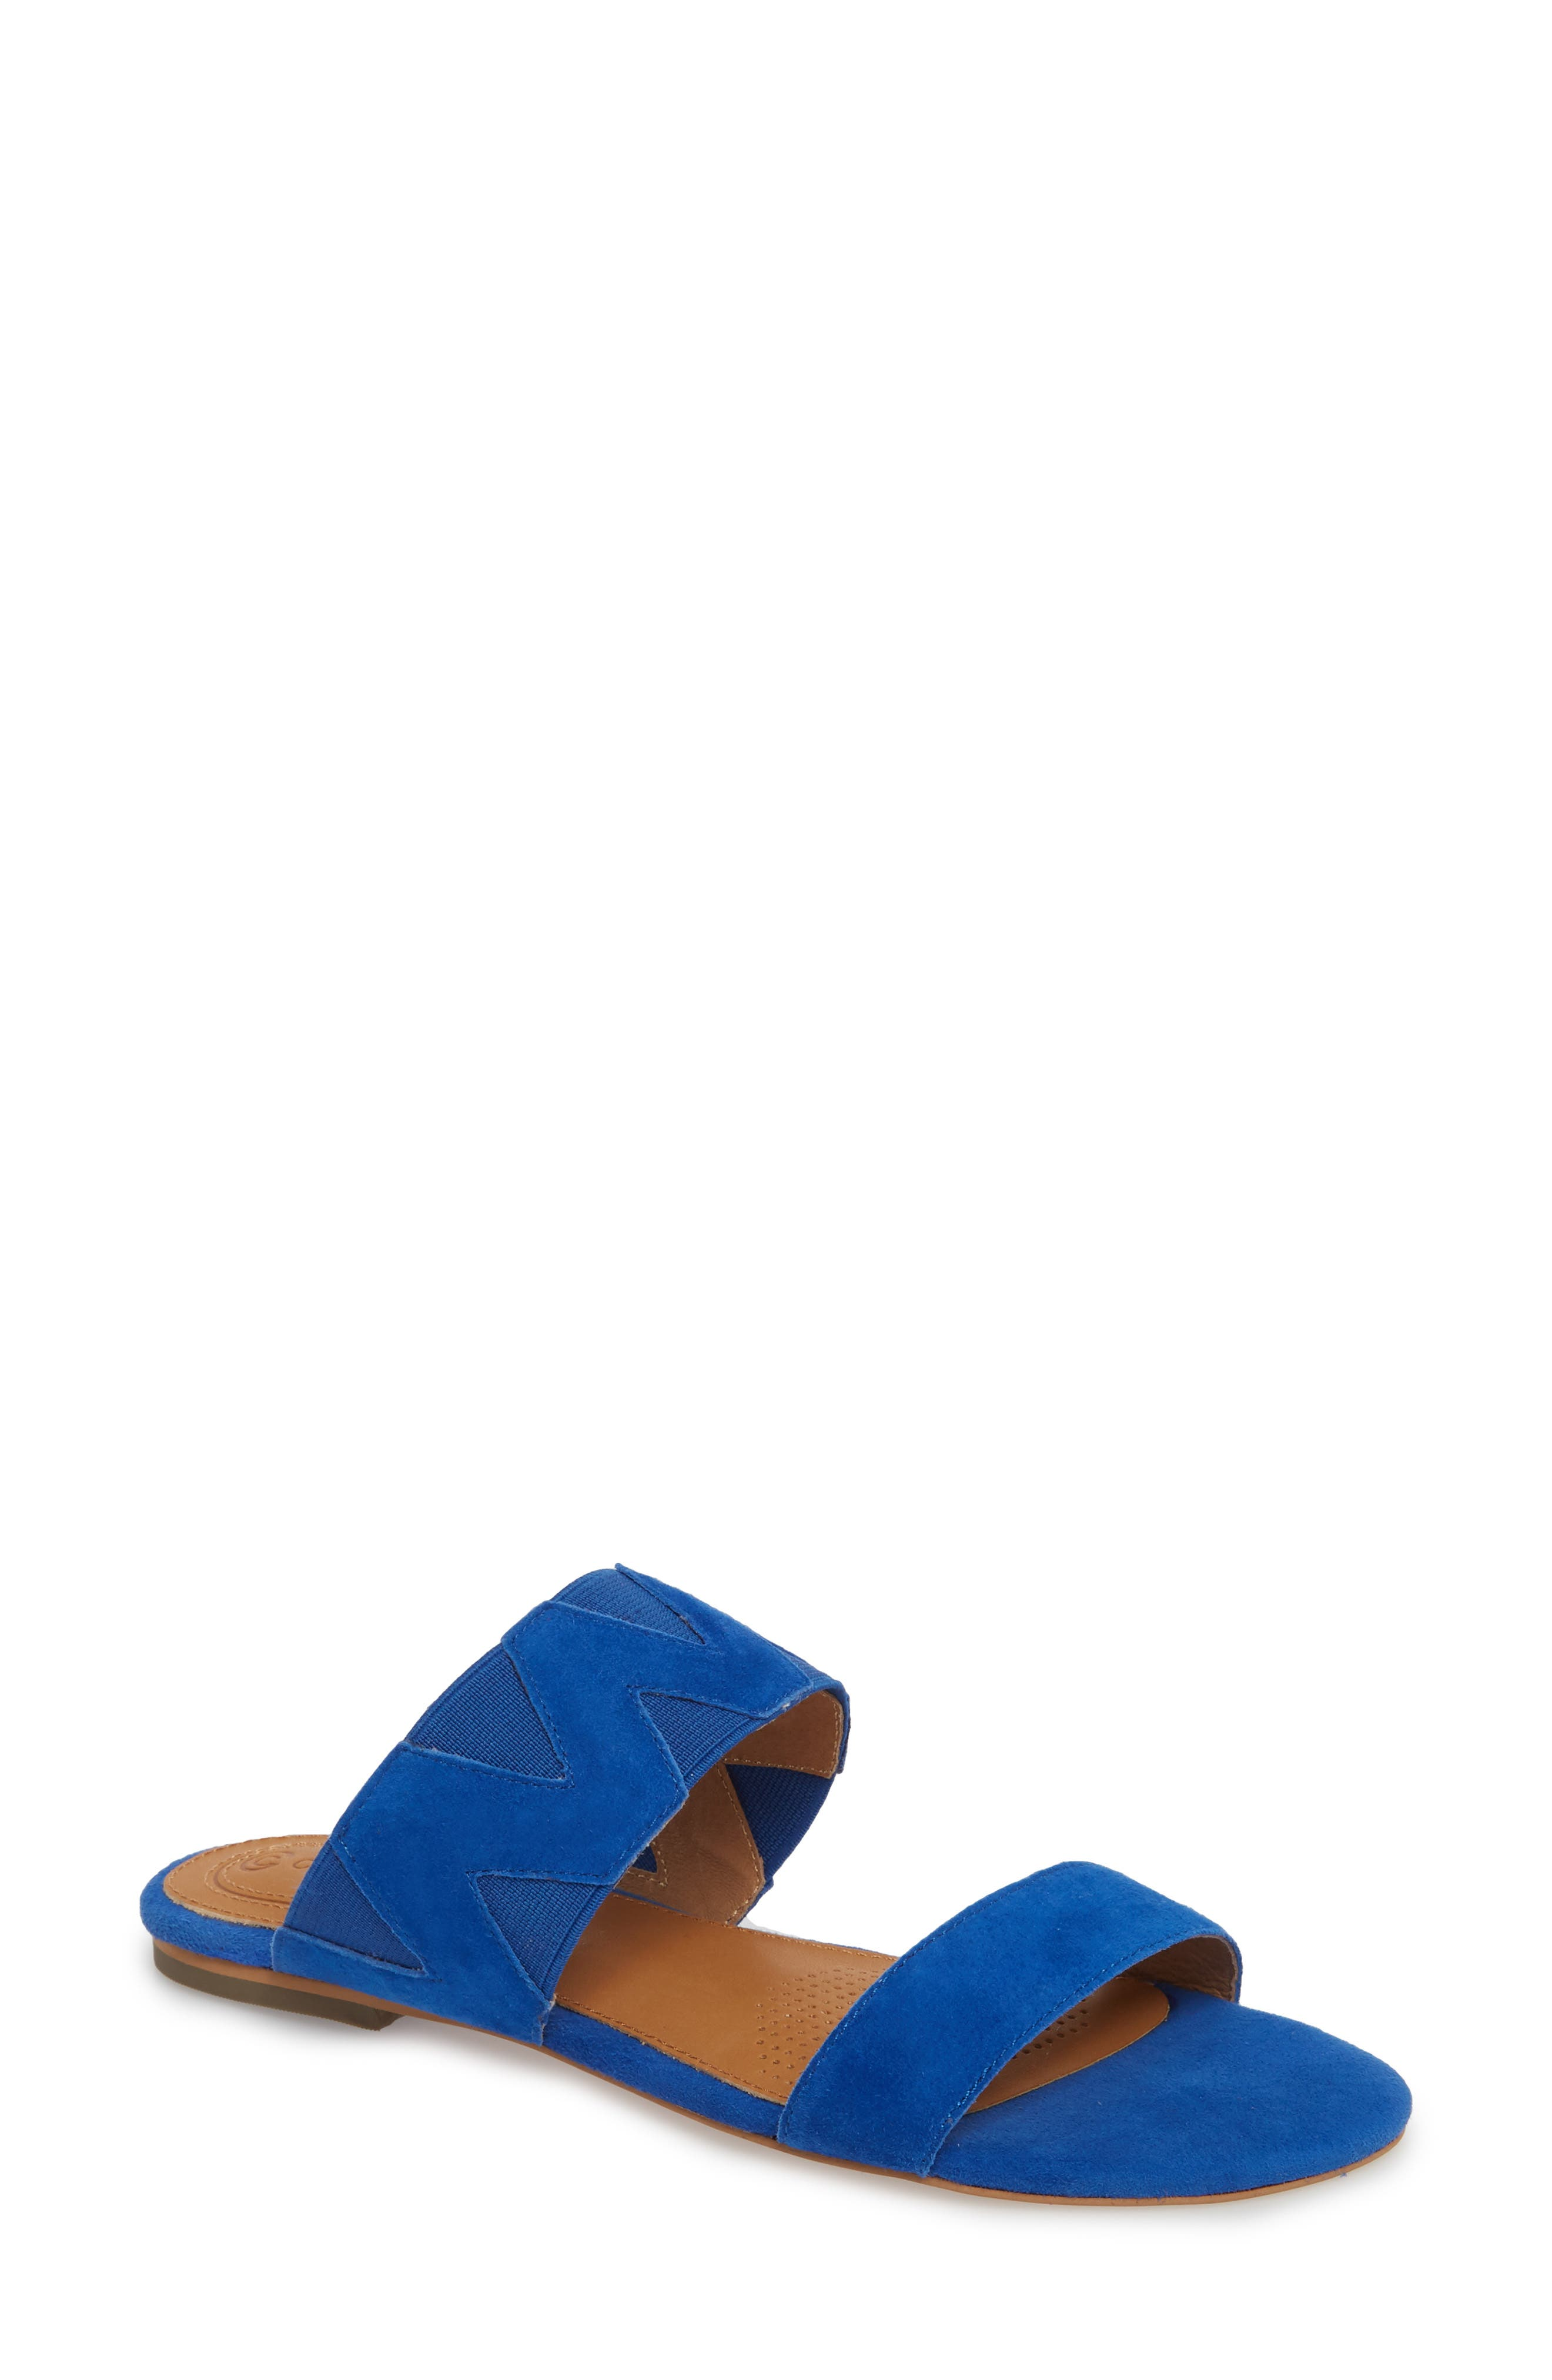 Vickee Double Band Sandal,                             Main thumbnail 1, color,                             Royal Blue Leather